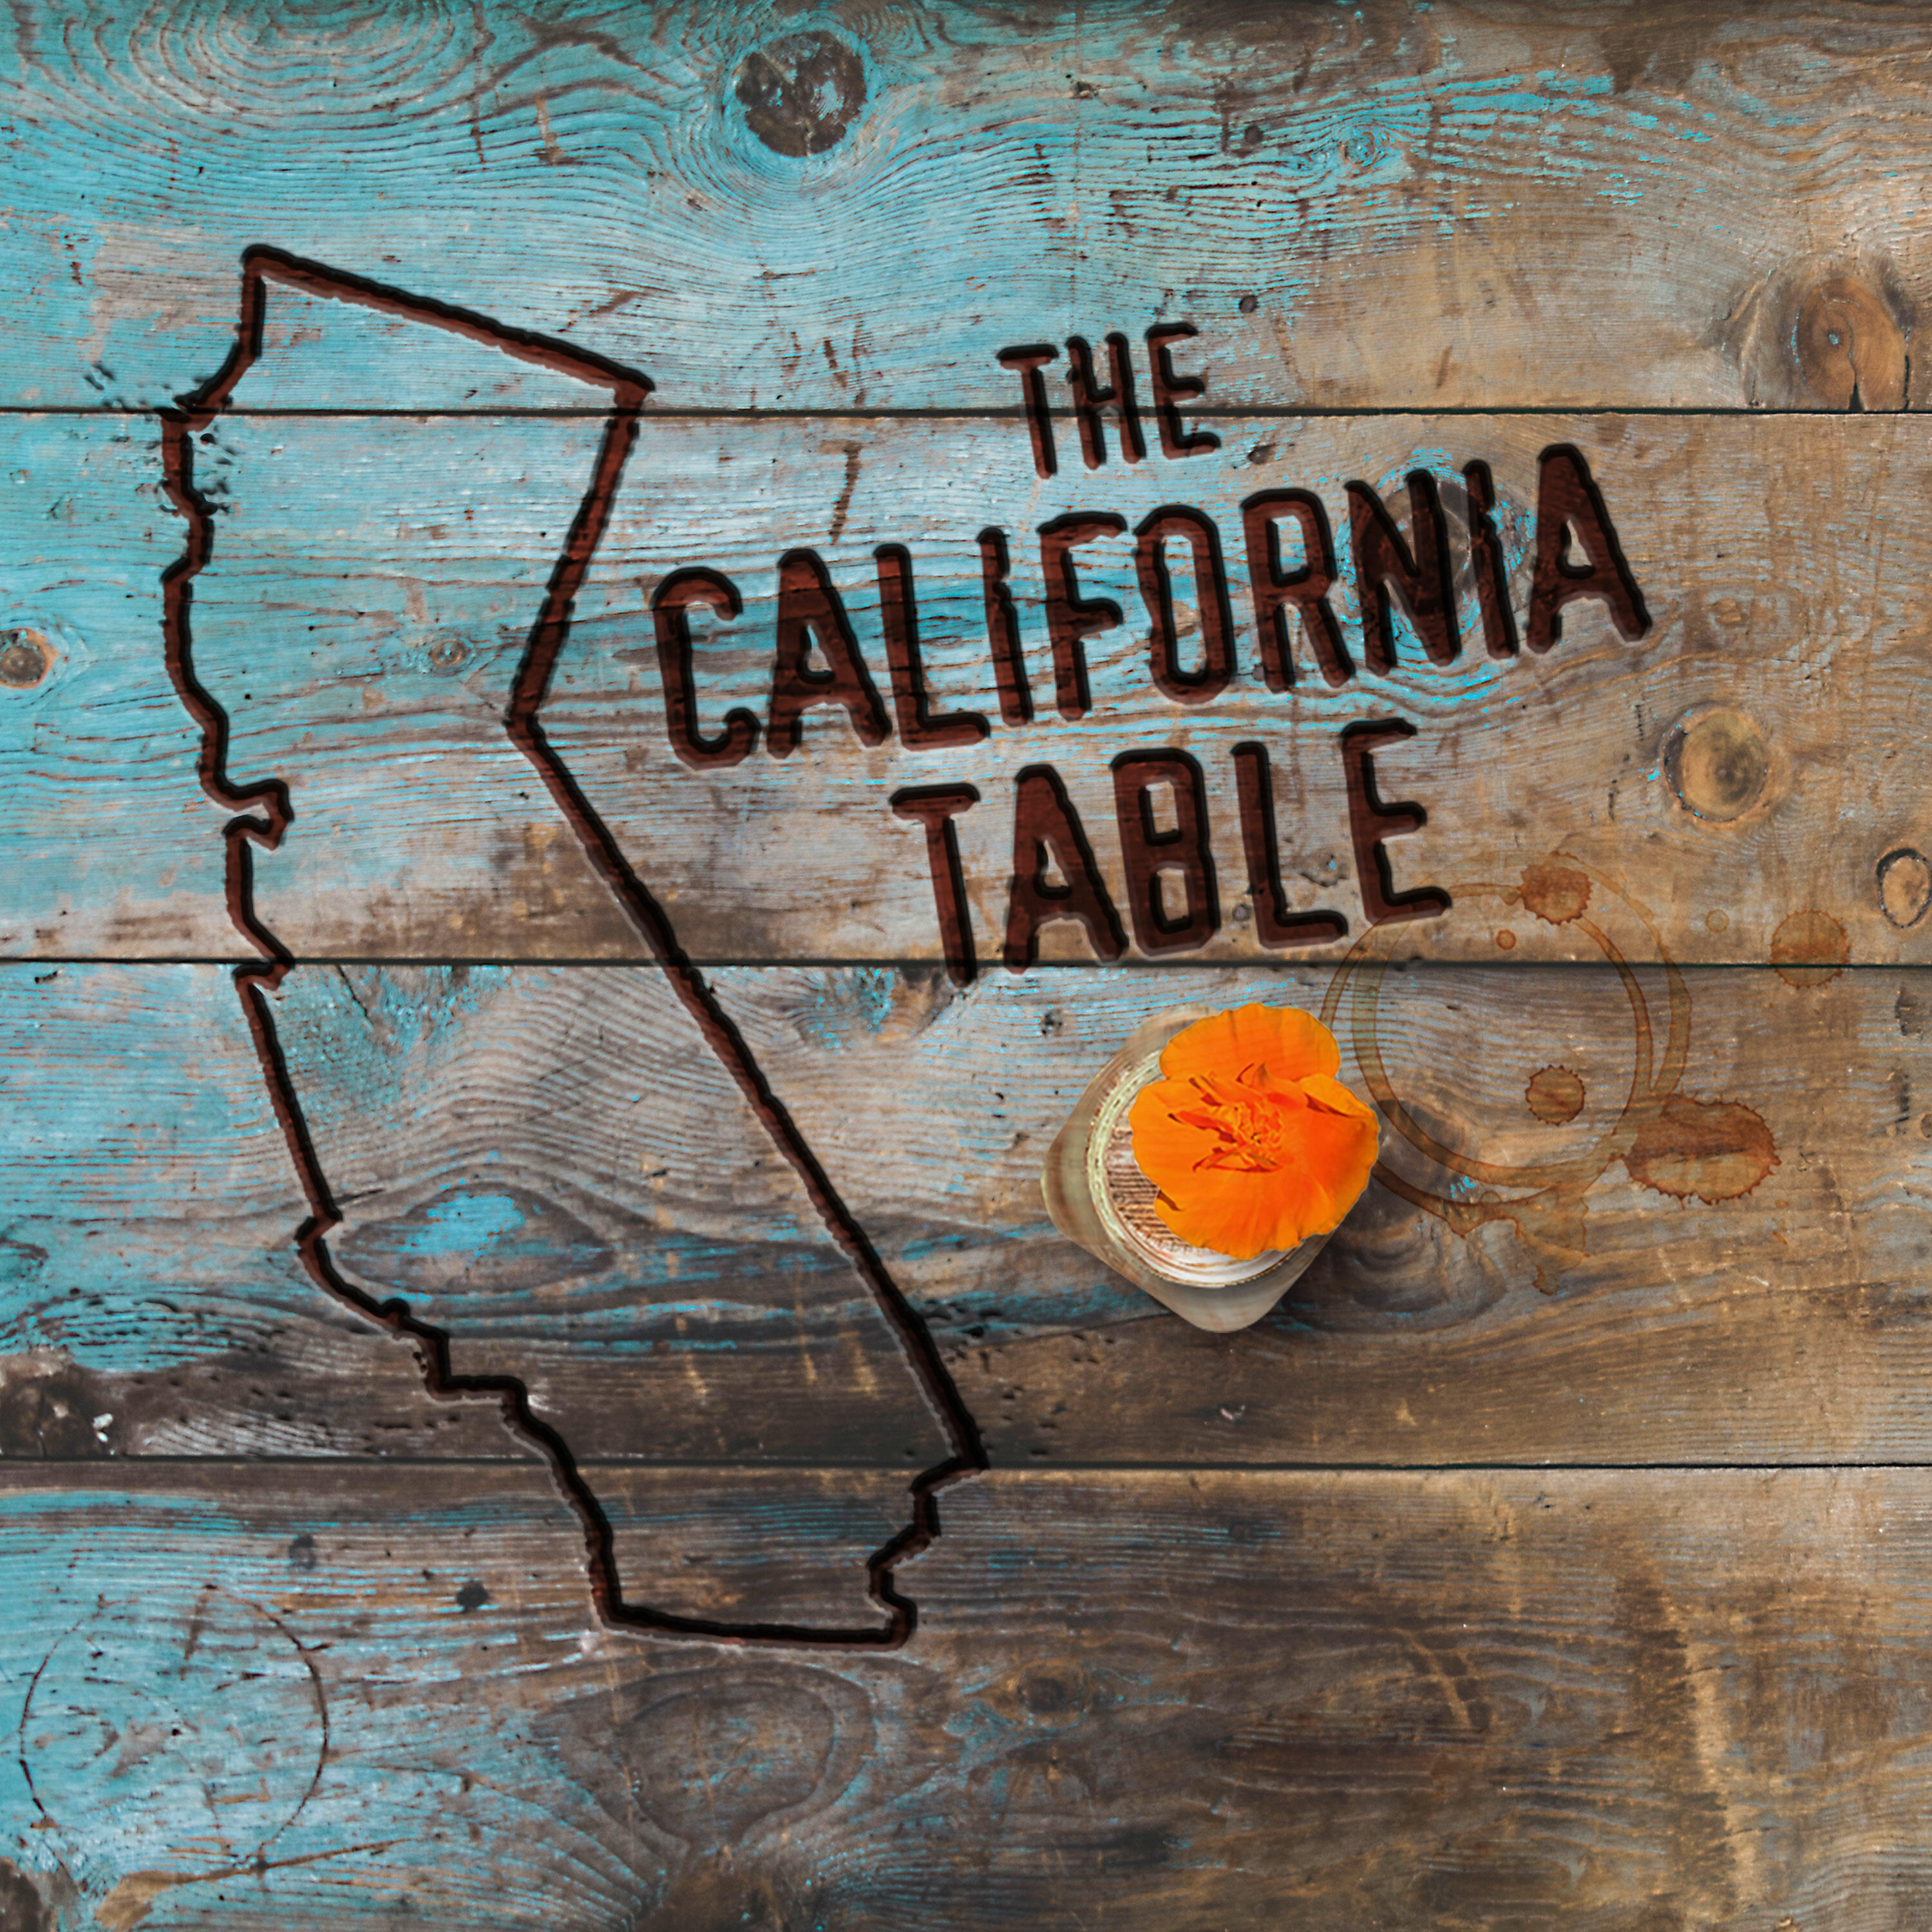 The California Table